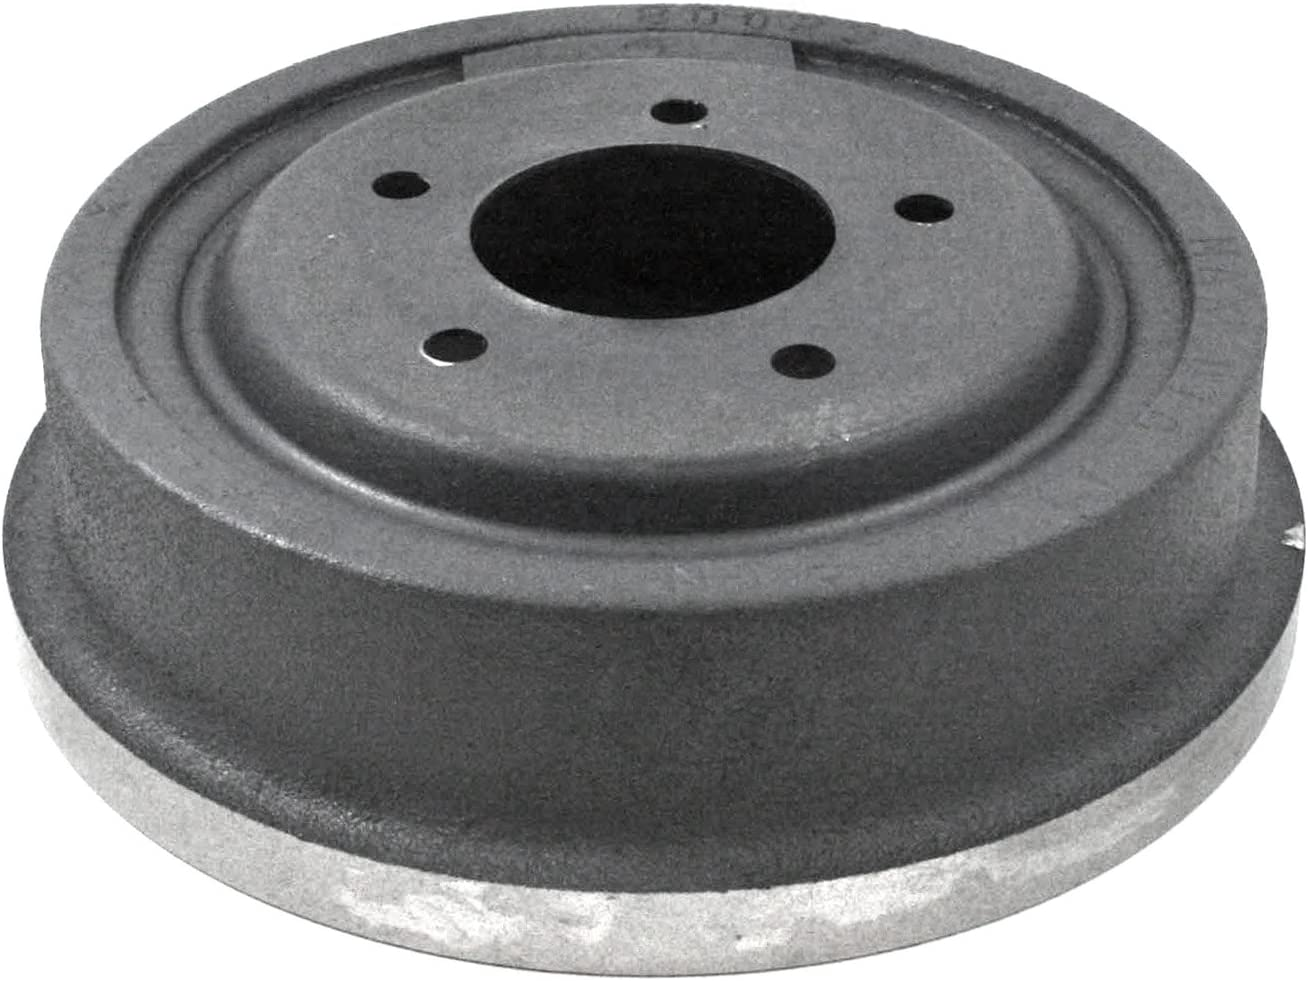 DuraGo Popular shop is the lowest price challenge Raleigh Mall BD80023 Rear Drum Brake Floating